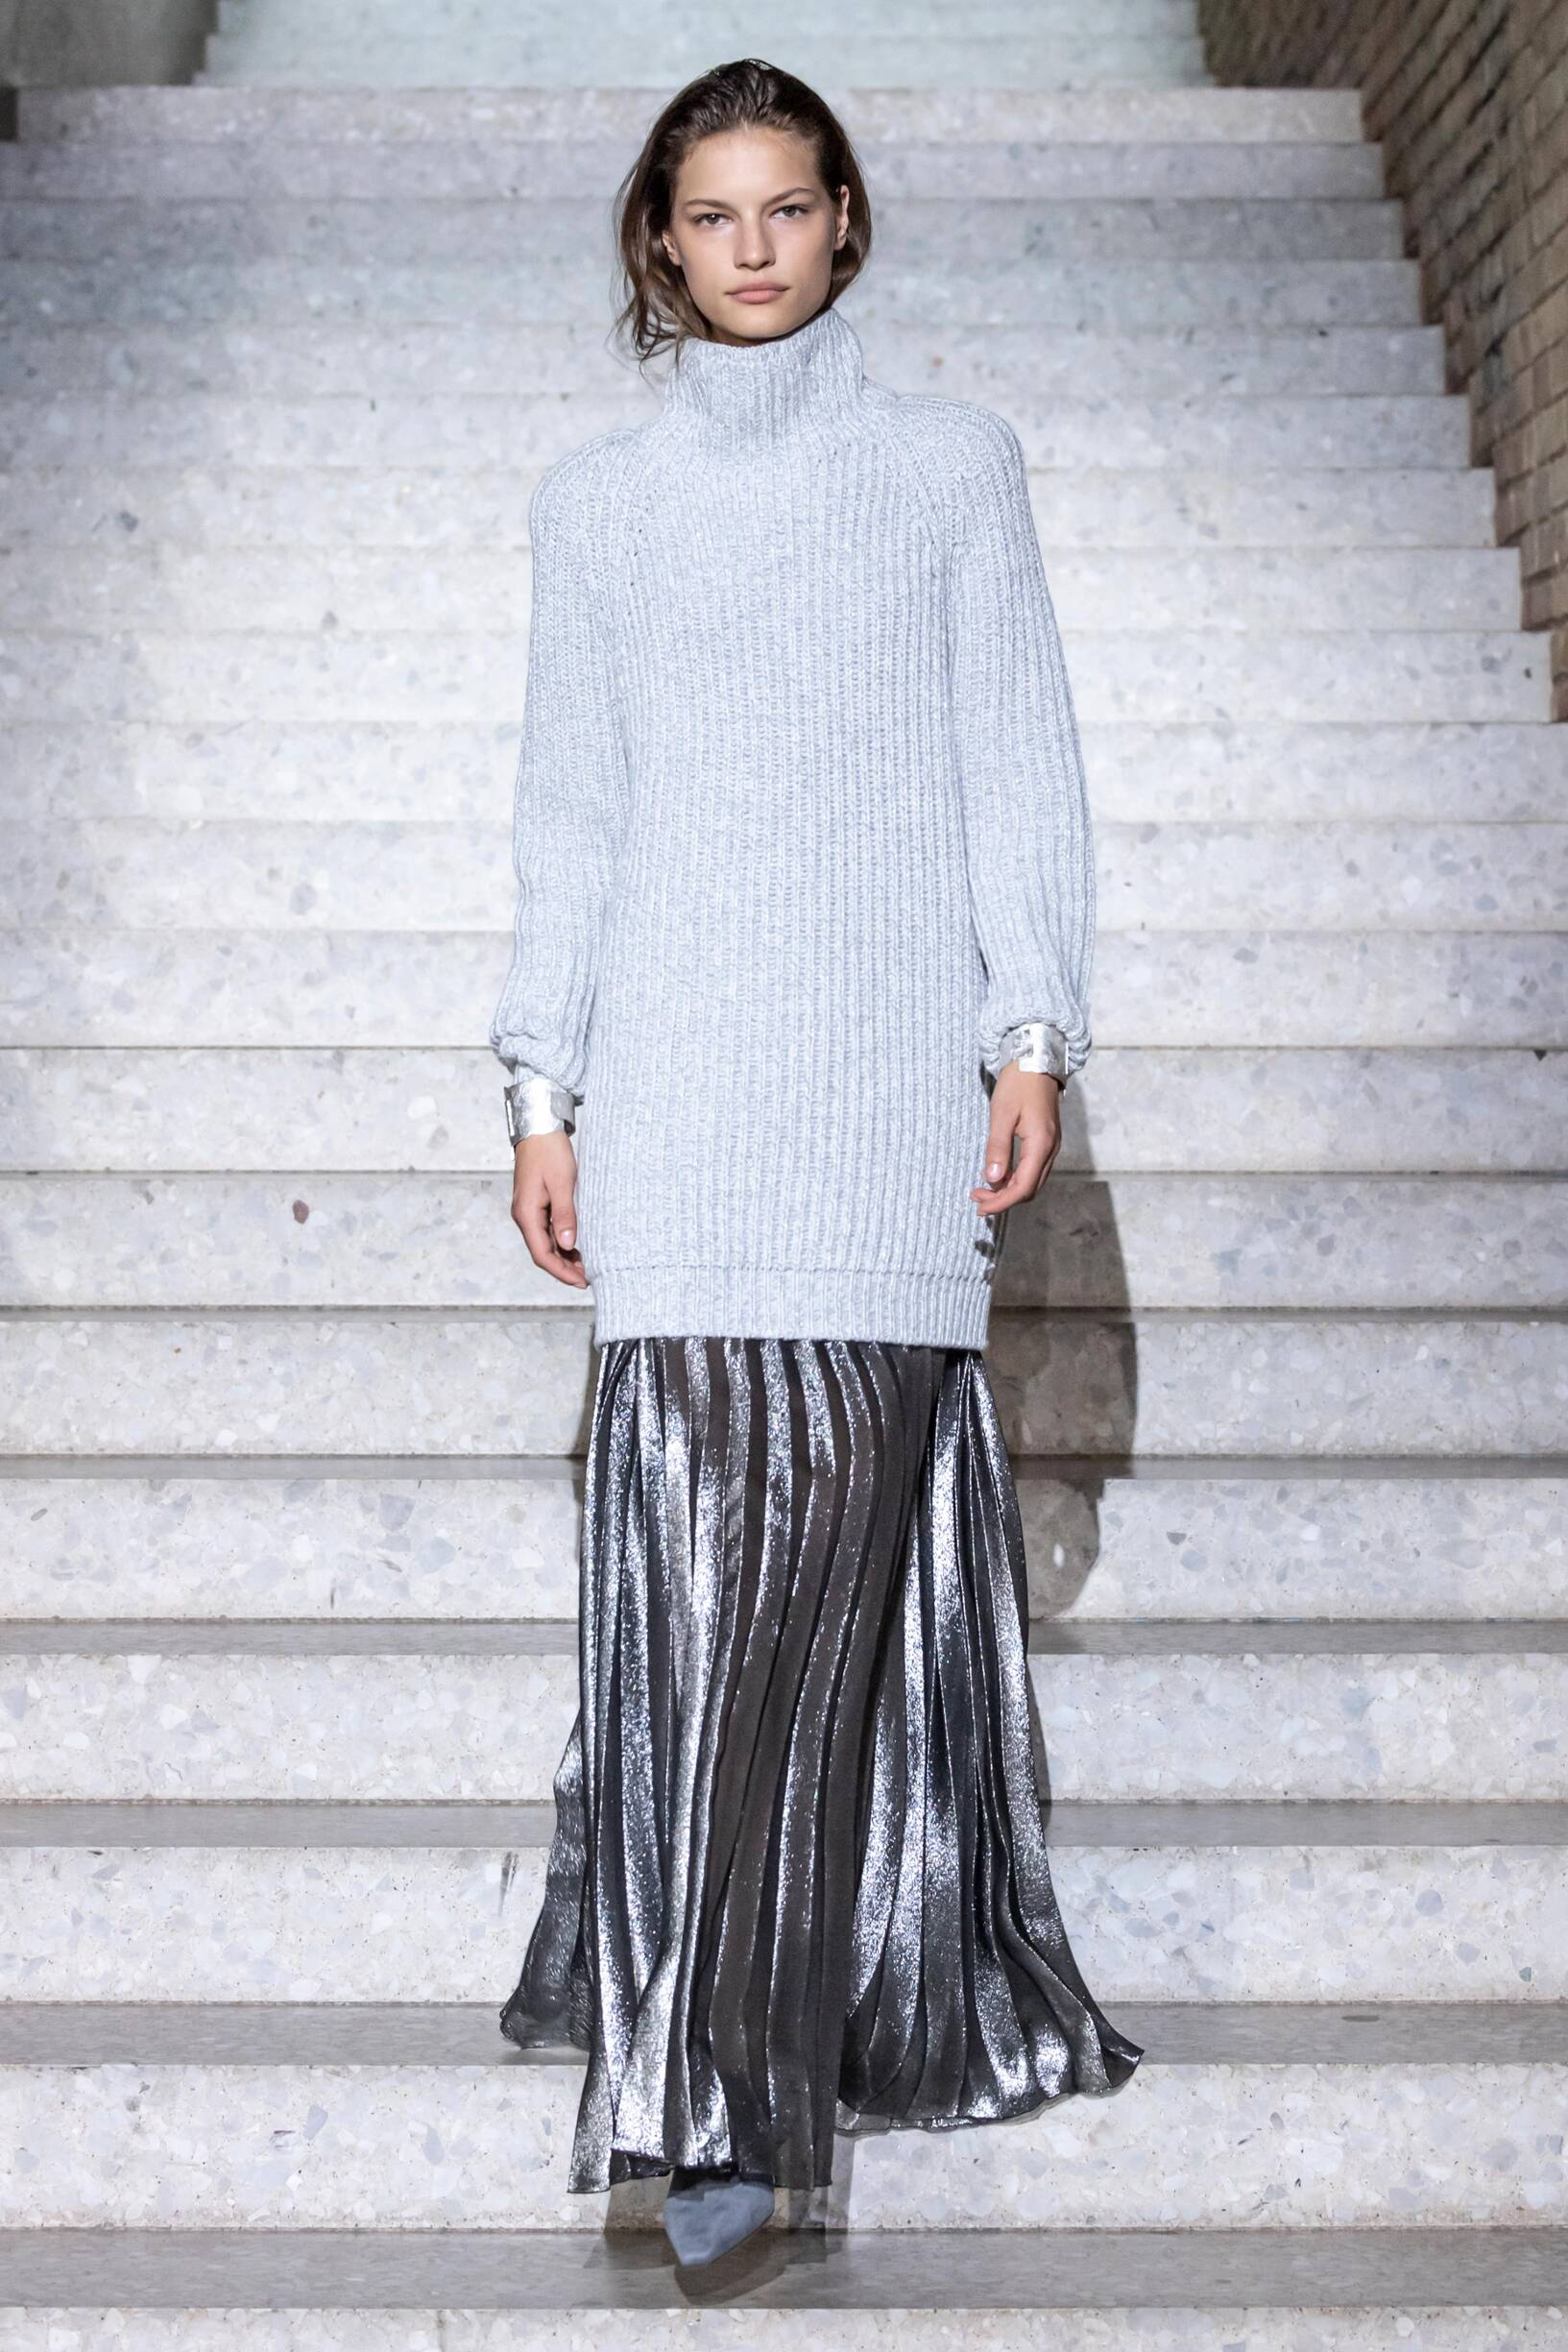 Max Mara Resort 2020 Collection Look 34 Berlin